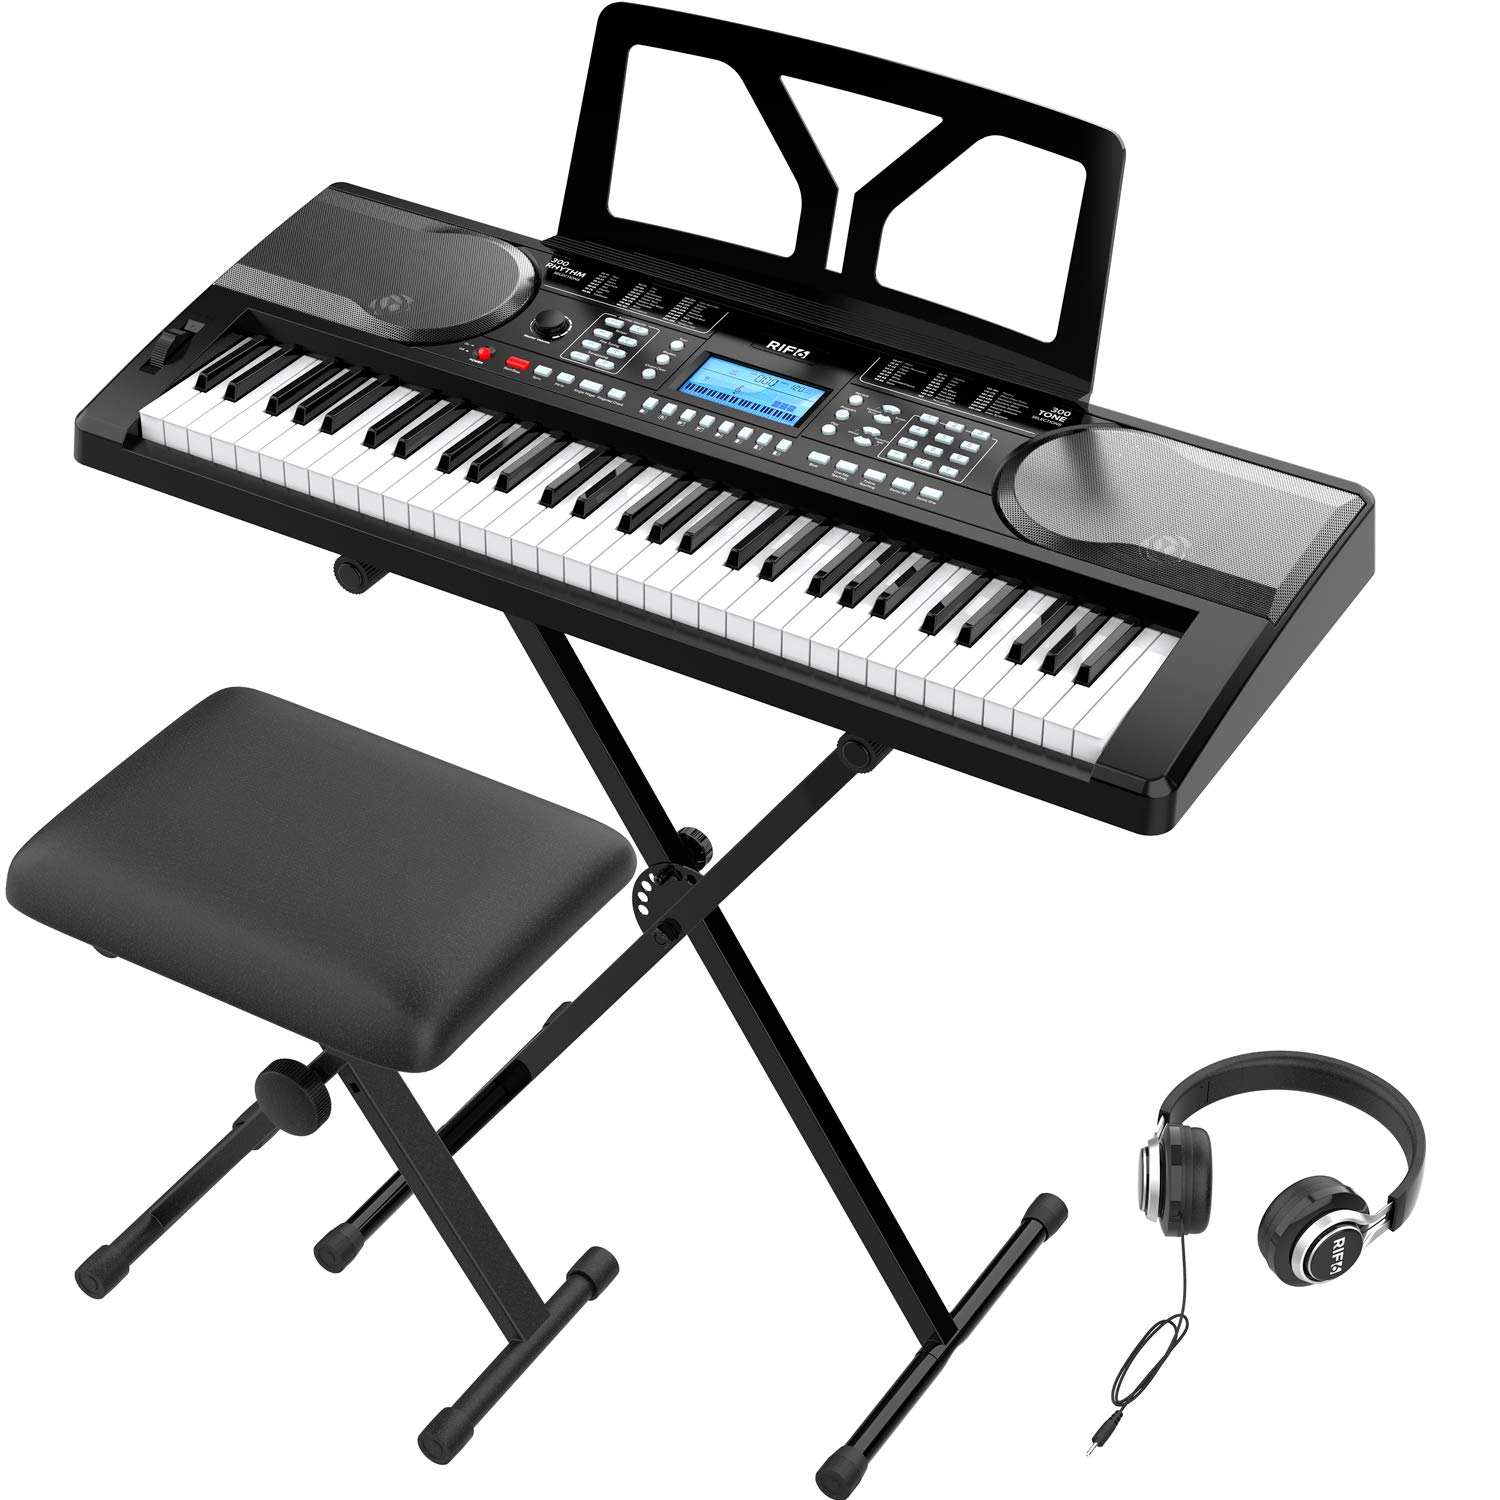 RIF6 Electric 61 Key Piano Keyboard - with Over Ear Headphones, Music Stand, Digital LCD Display, Teaching Modes and Adjustable Stool - Electronic Musical Instruments Starter Set for Kids and Adults by RIF6